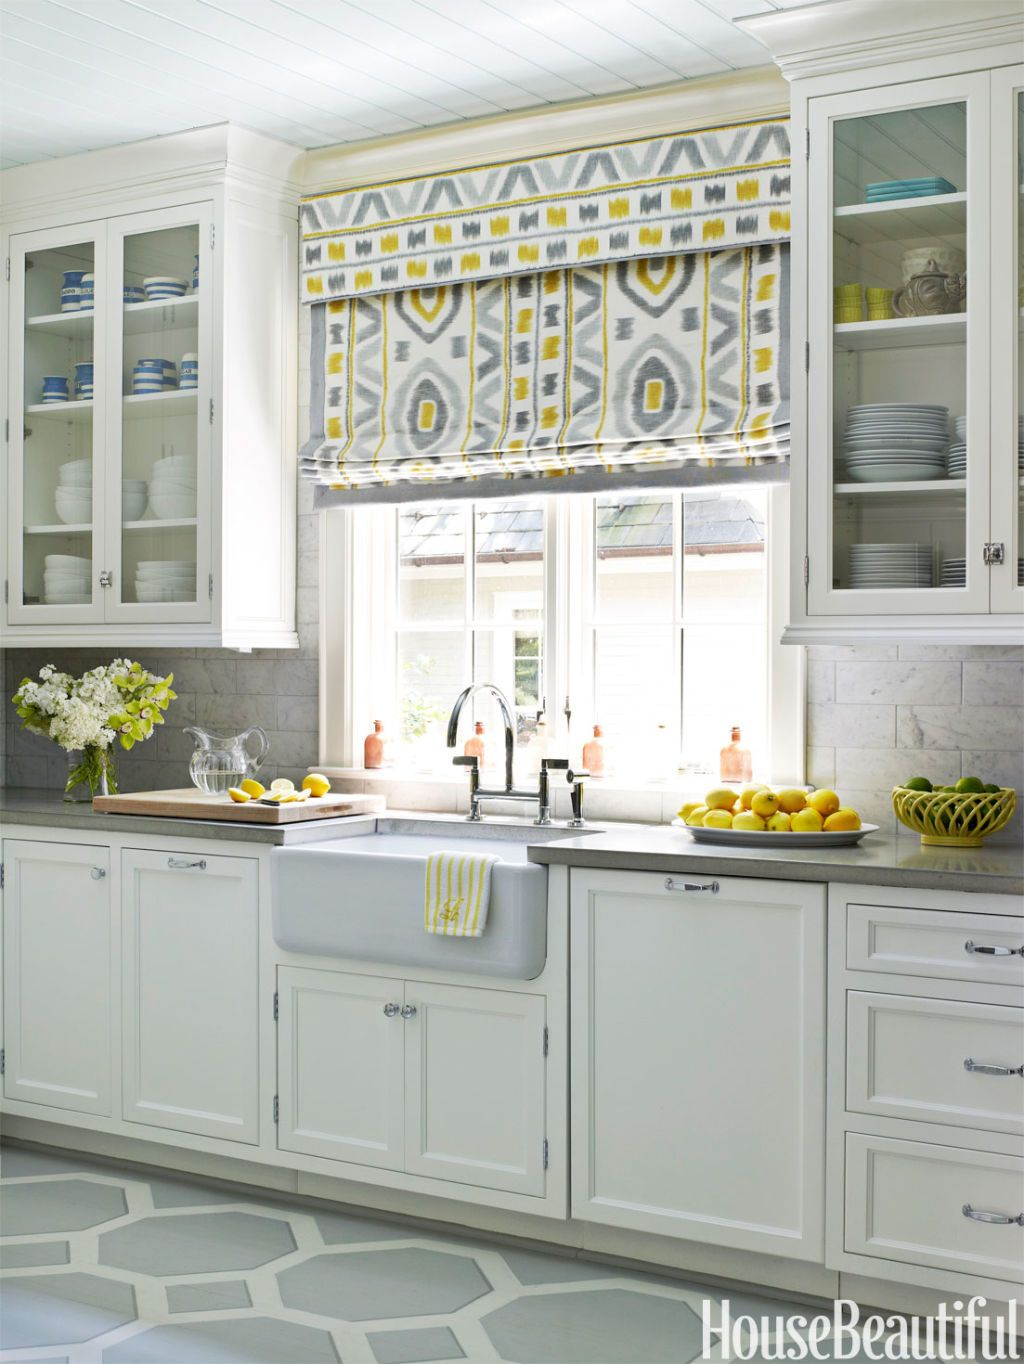 House Beautiful Kitchens The Top 10 Kitchen Pins Of 2013  House Beautiful Pinterest Boards